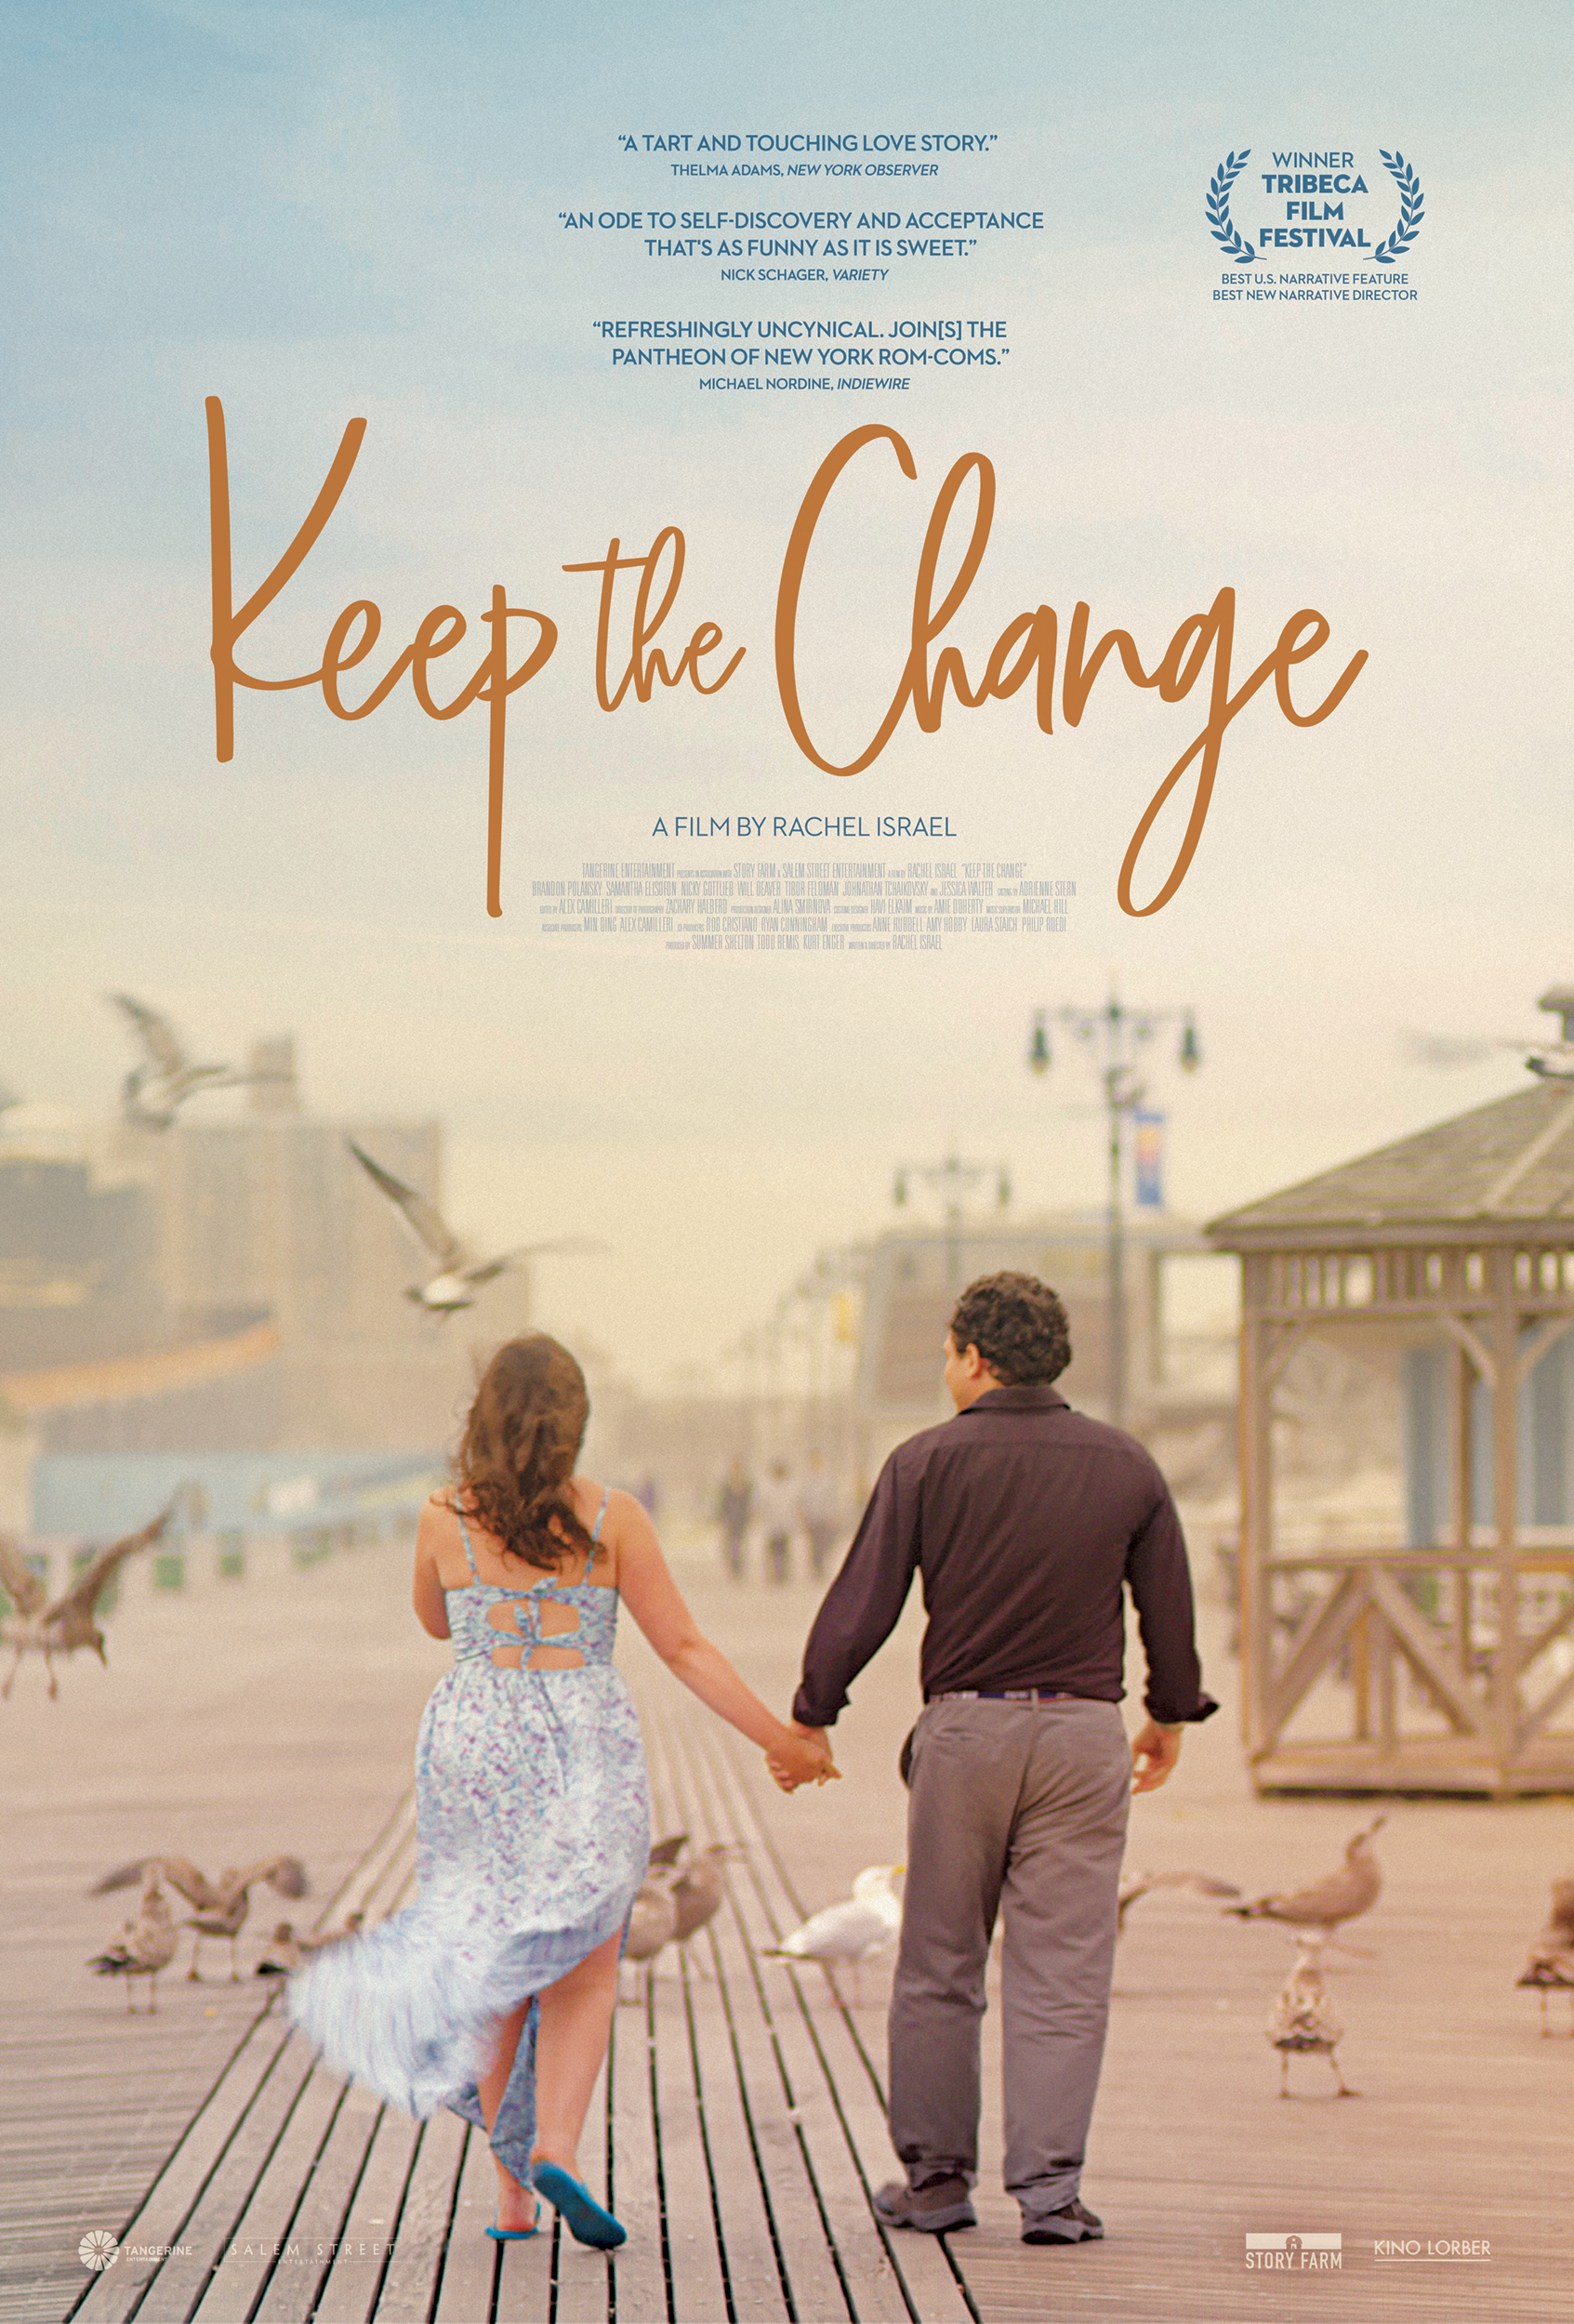 Keep the Change (trailer)